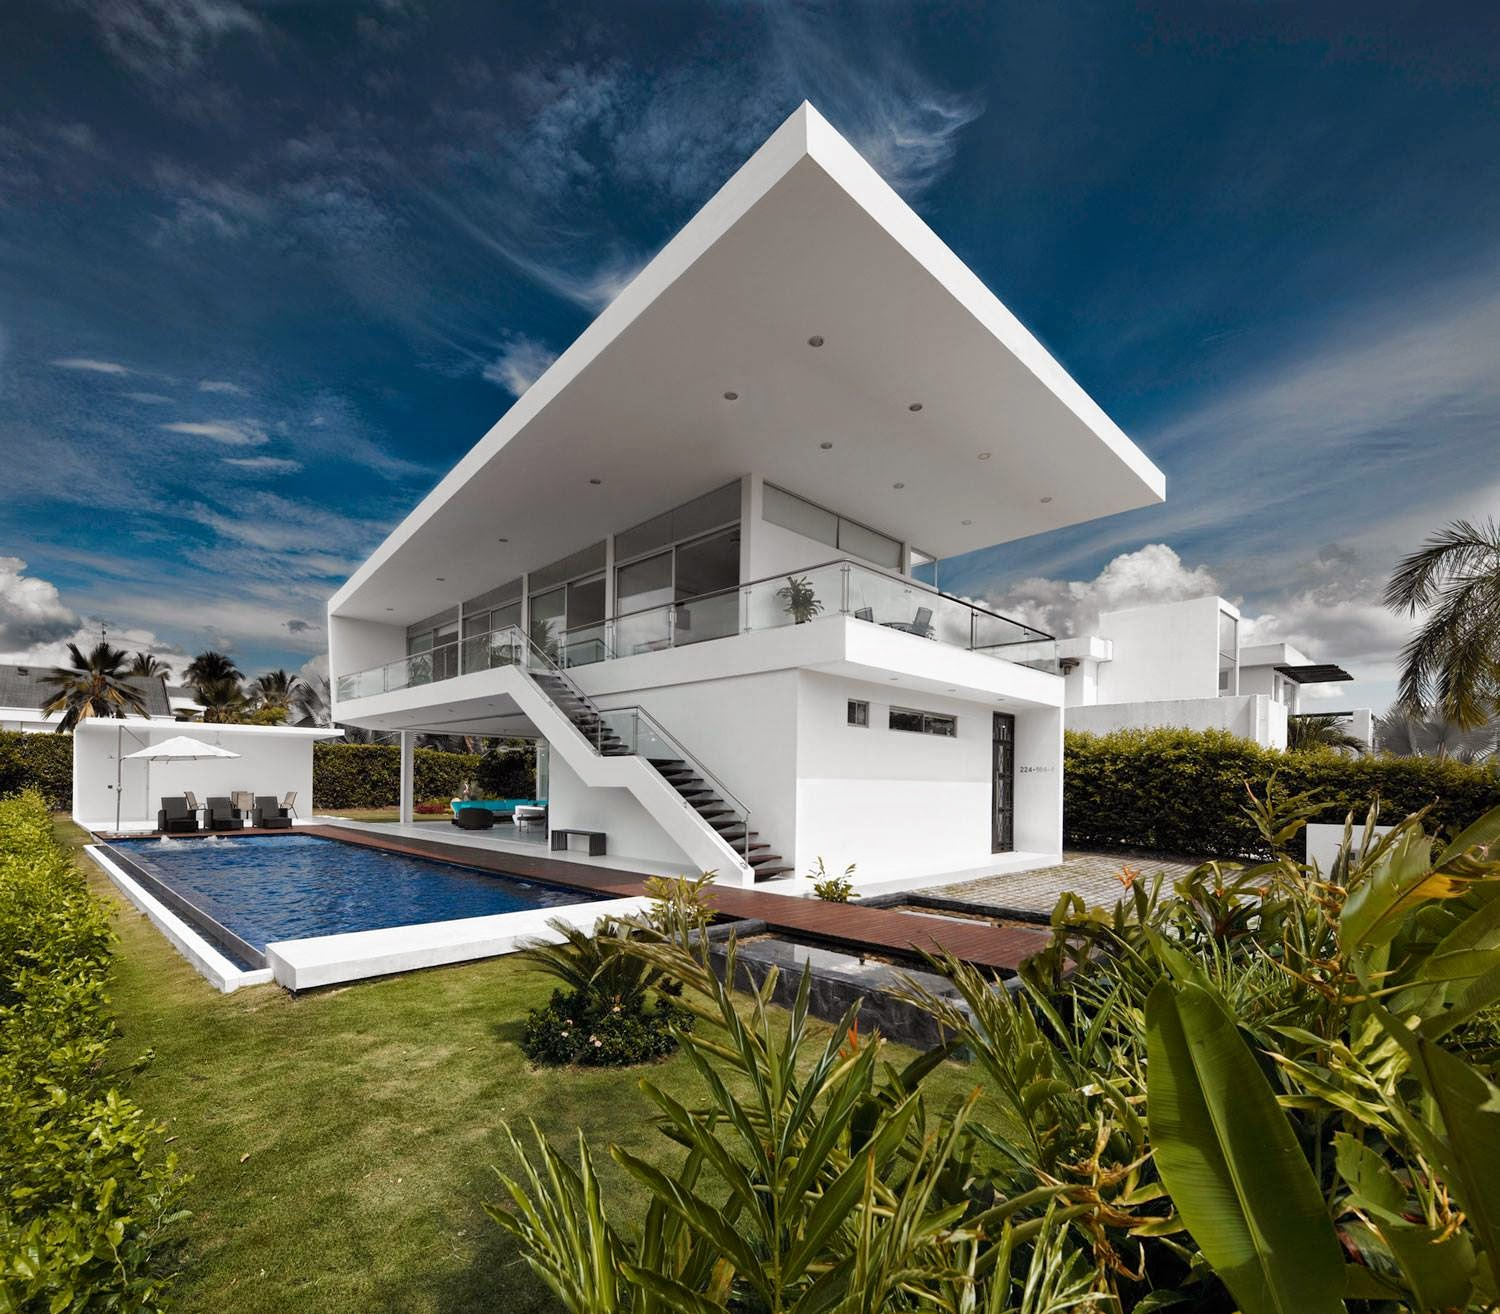 Beautiful Home Design: Modern Architecture Buildings